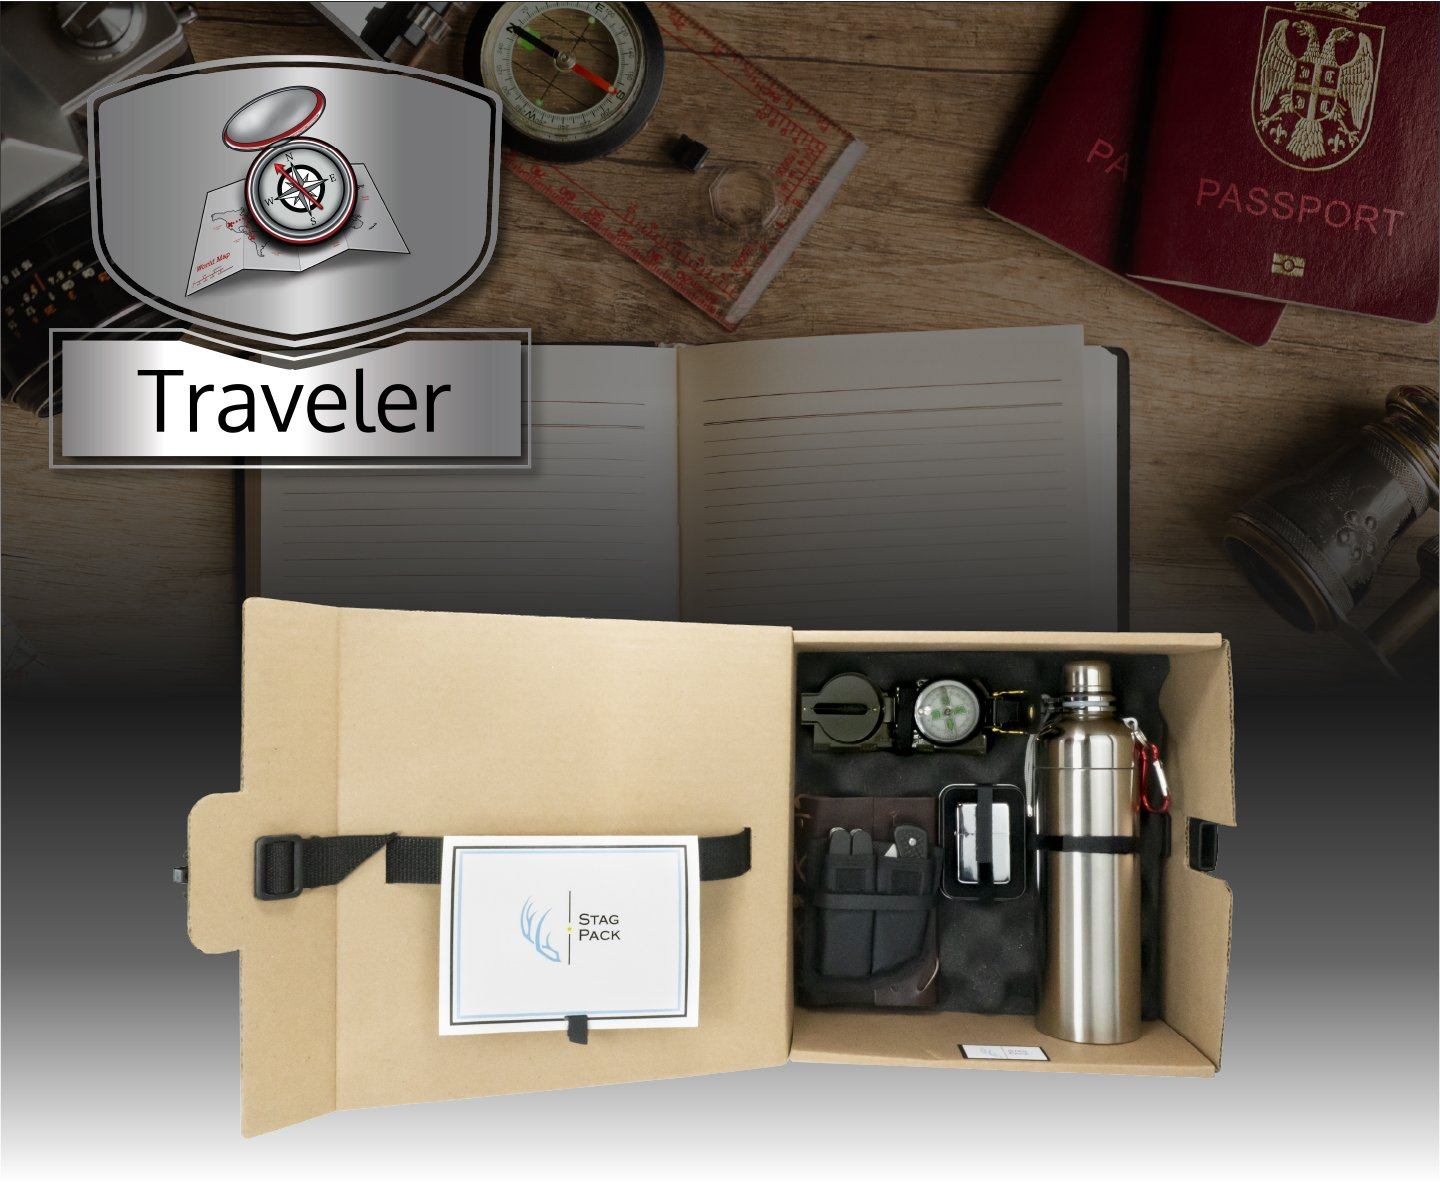 Traveler: Go-Pack